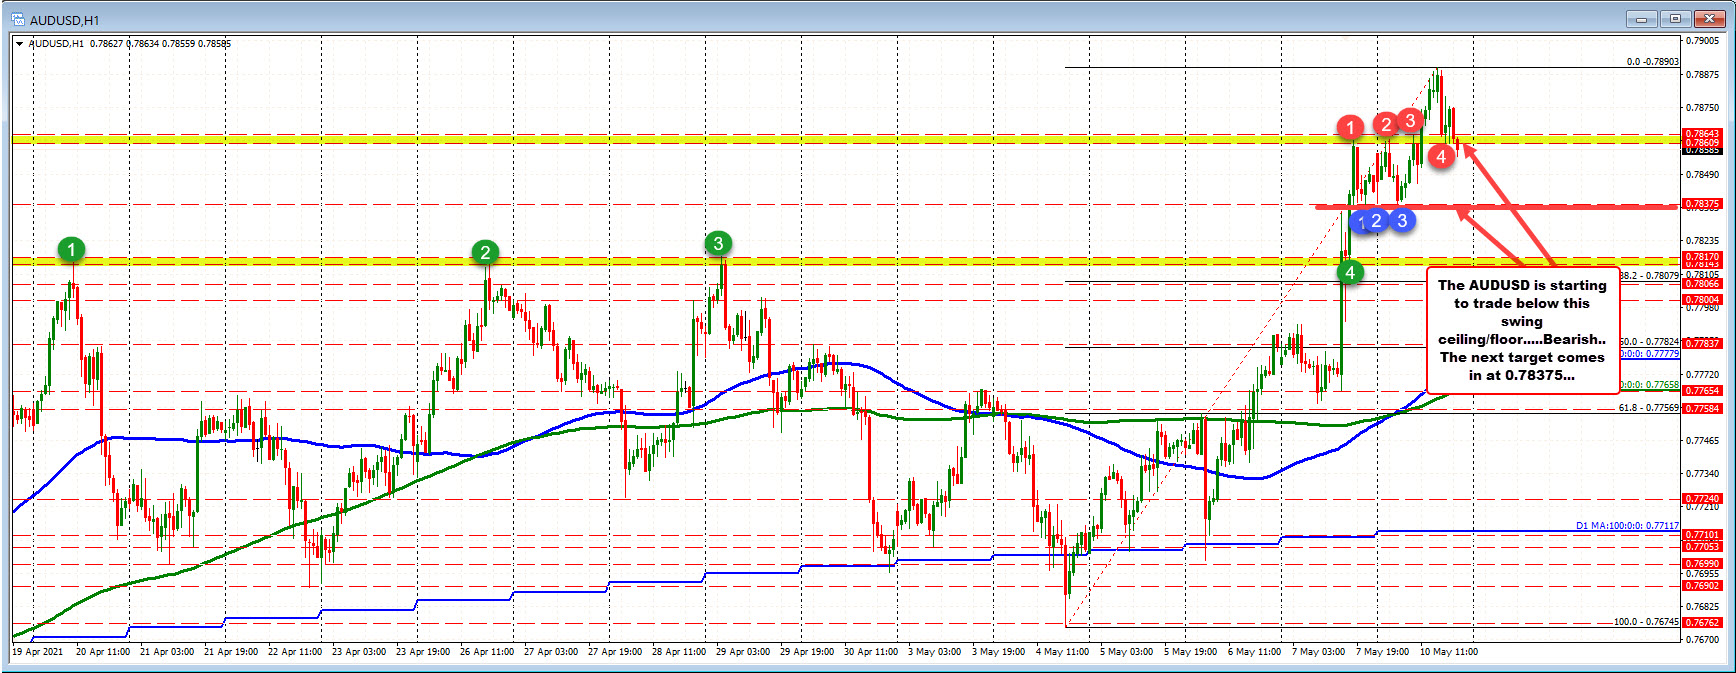 AUDUSD falls below from Friday and earlier today